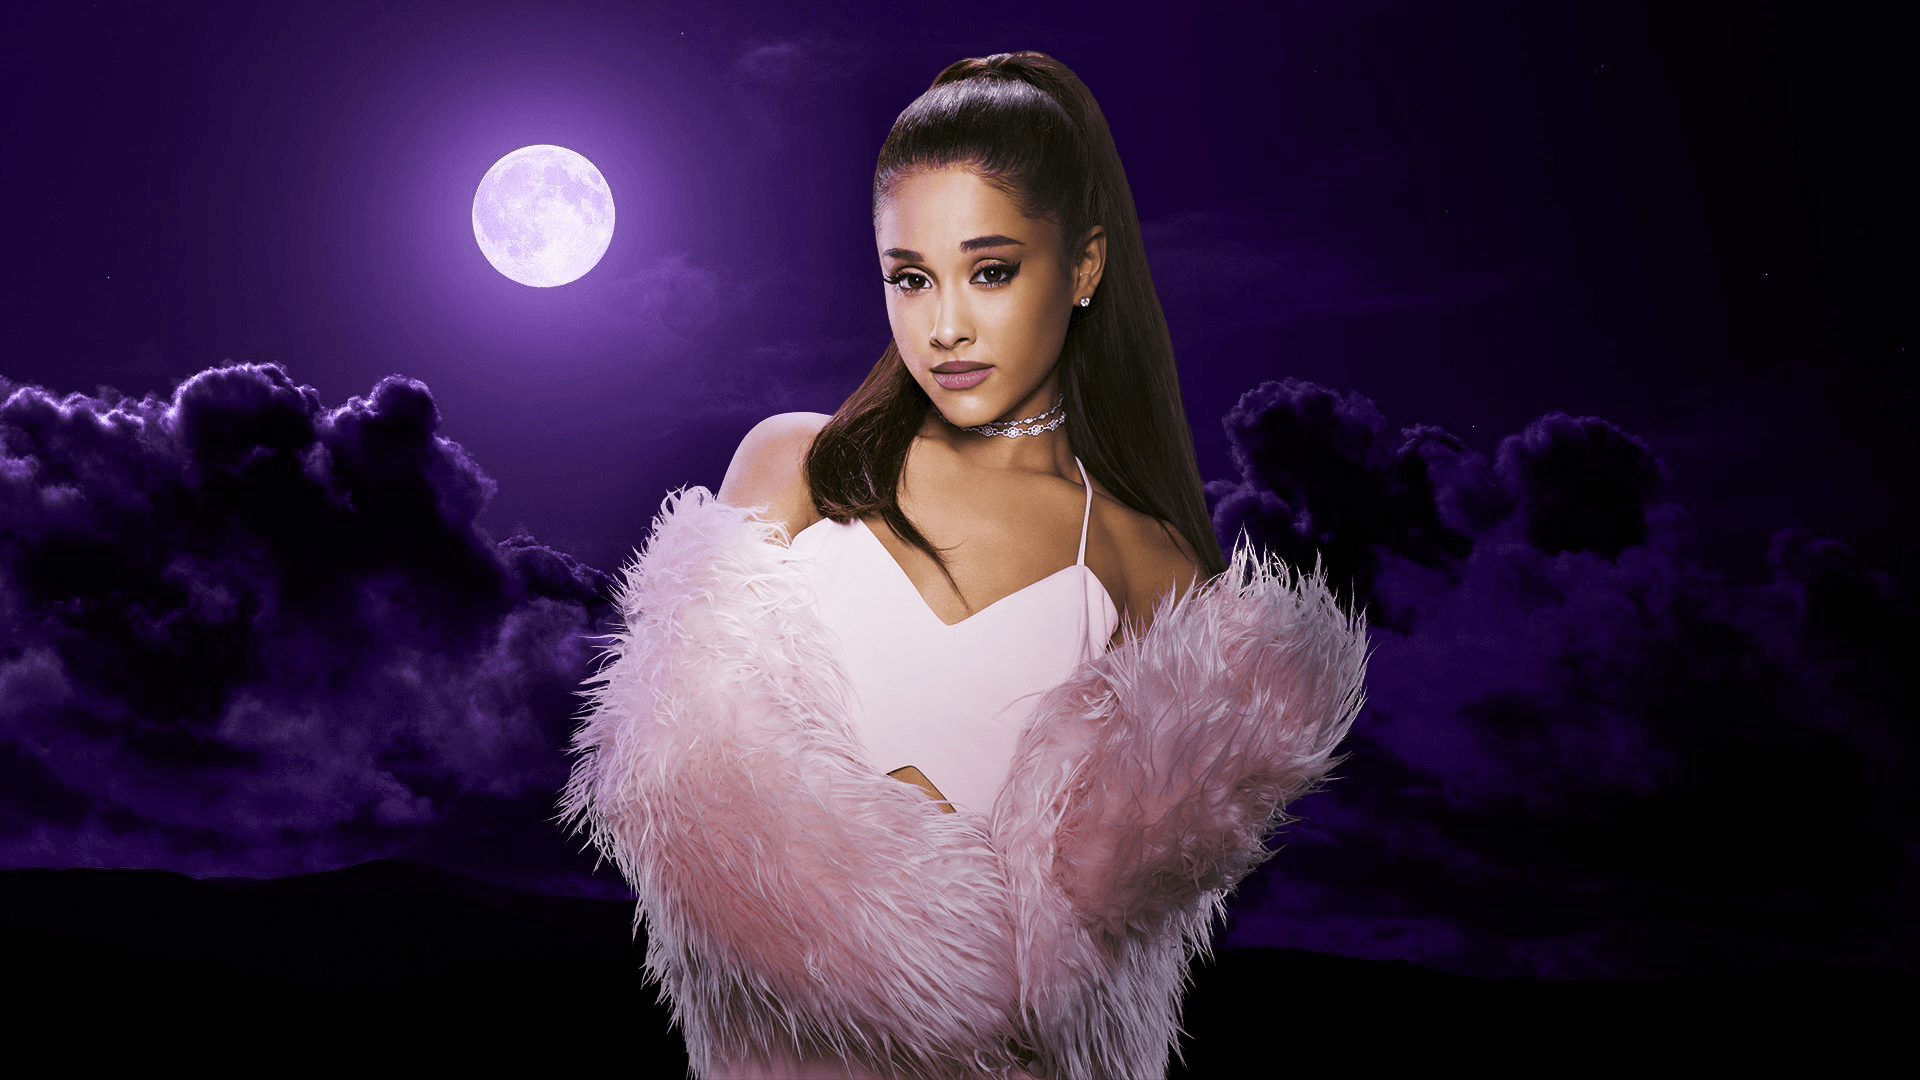 Ariana Grande Wallpapers   Top Ariana Grande Backgrounds 1920x1080